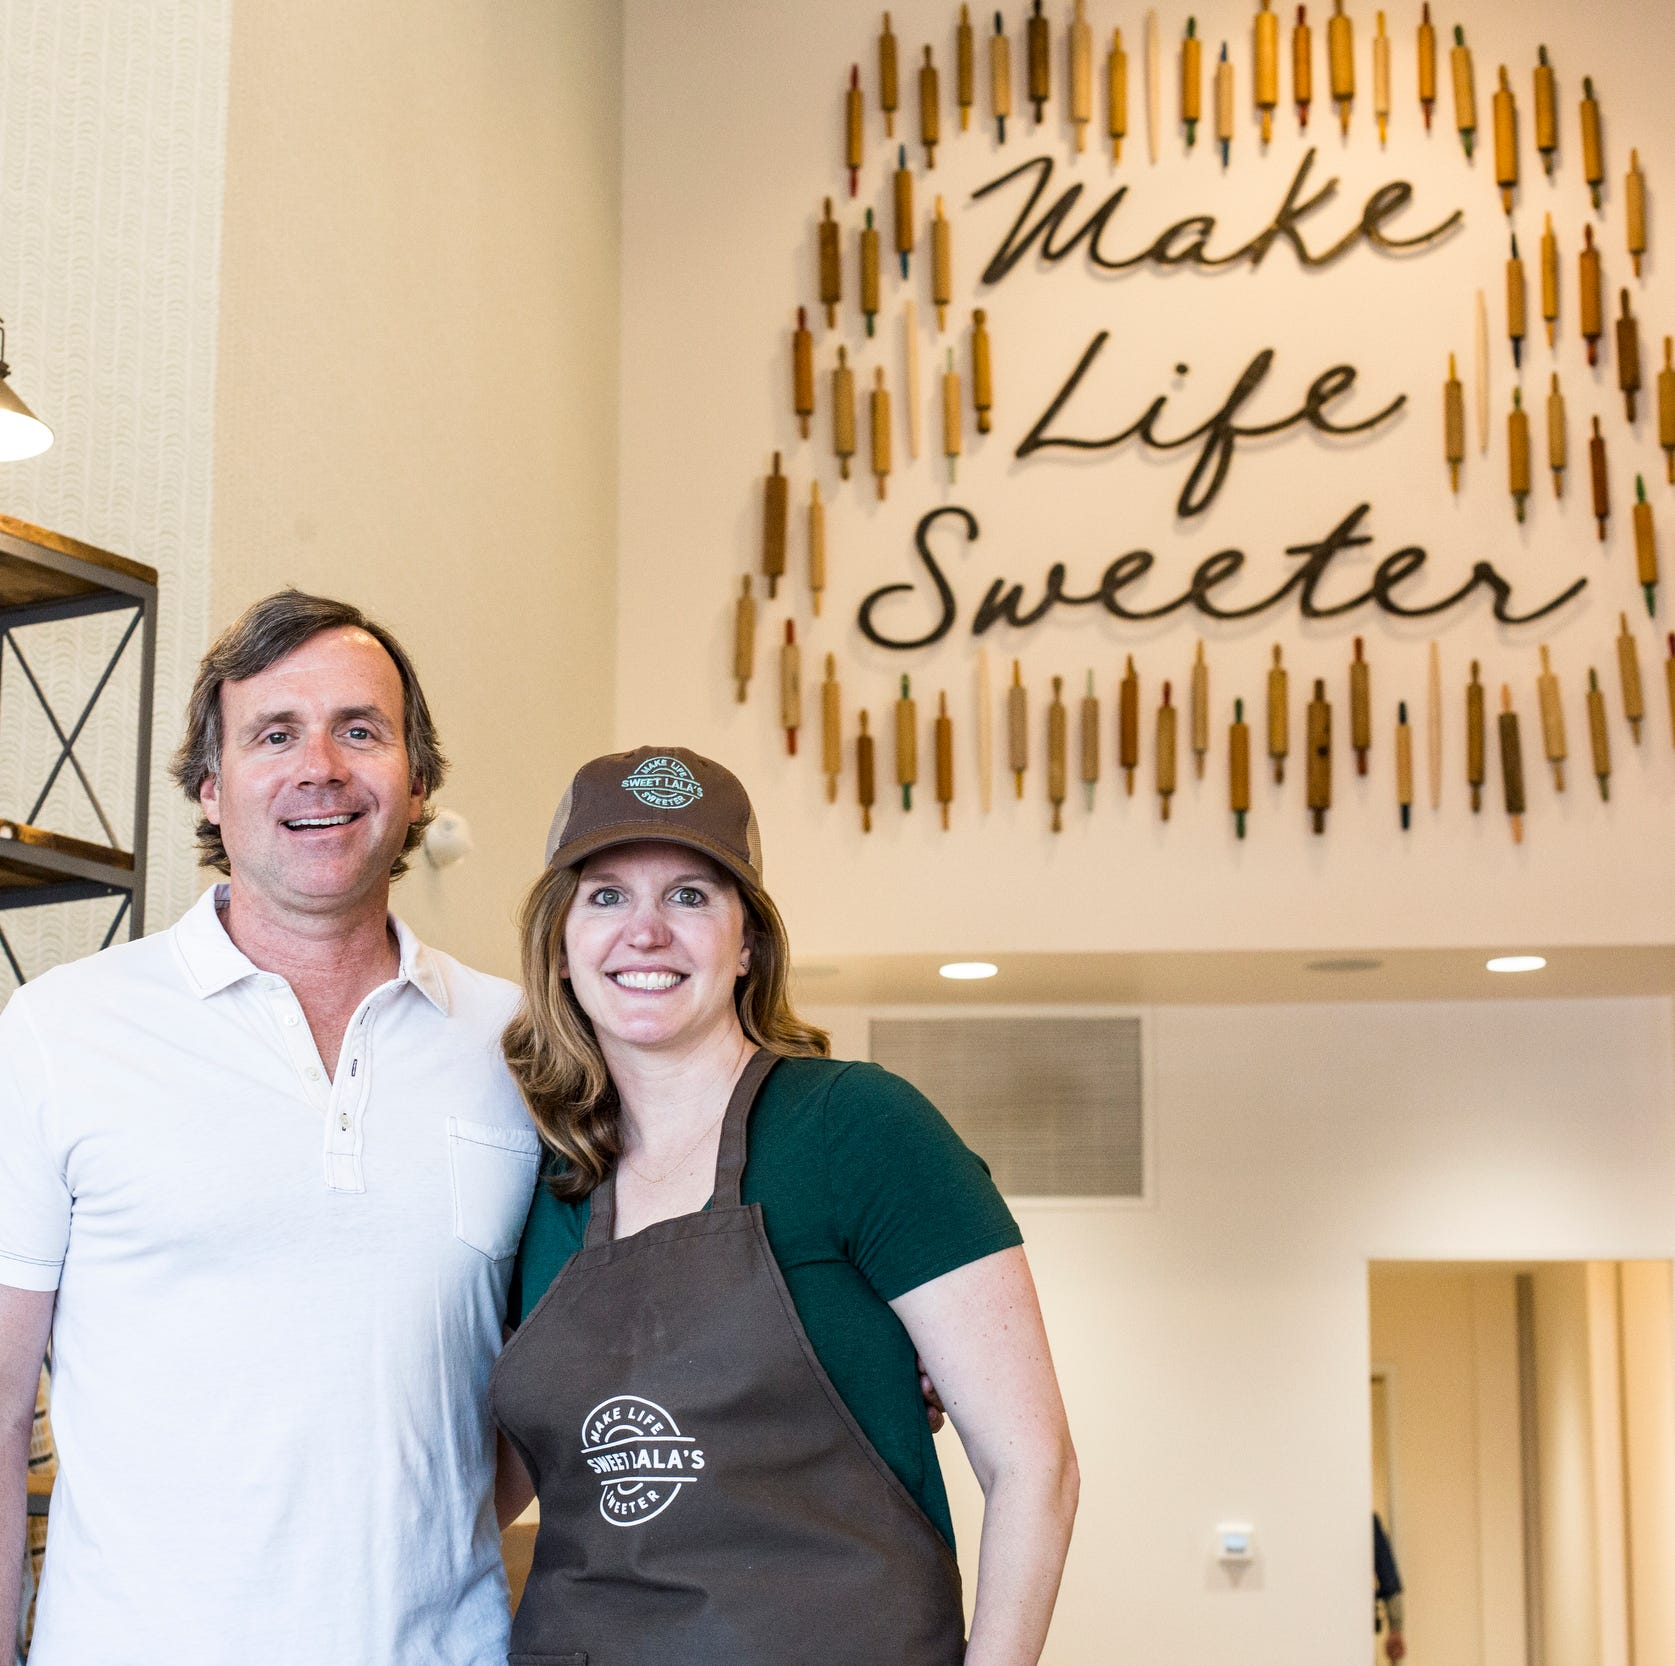 On a mission to 'make life sweeter': Sweet LaLa's Bakery to open in East Memphis